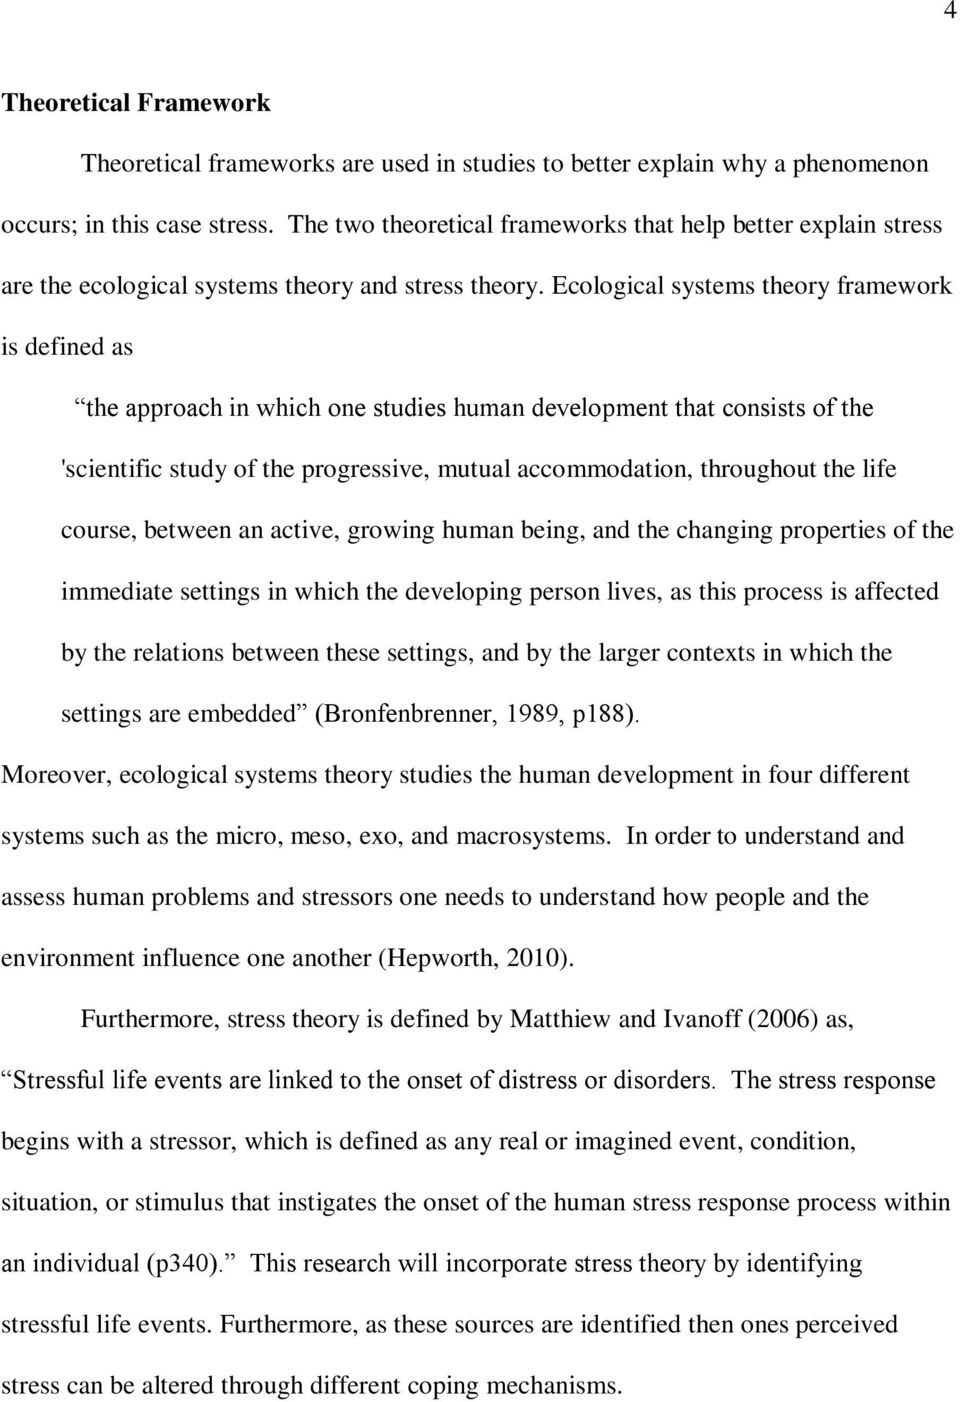 Ecological systems theory framework is defined as the approach in which one studies human development that consists of the 'scientific study of the progressive, mutual accommodation, throughout the